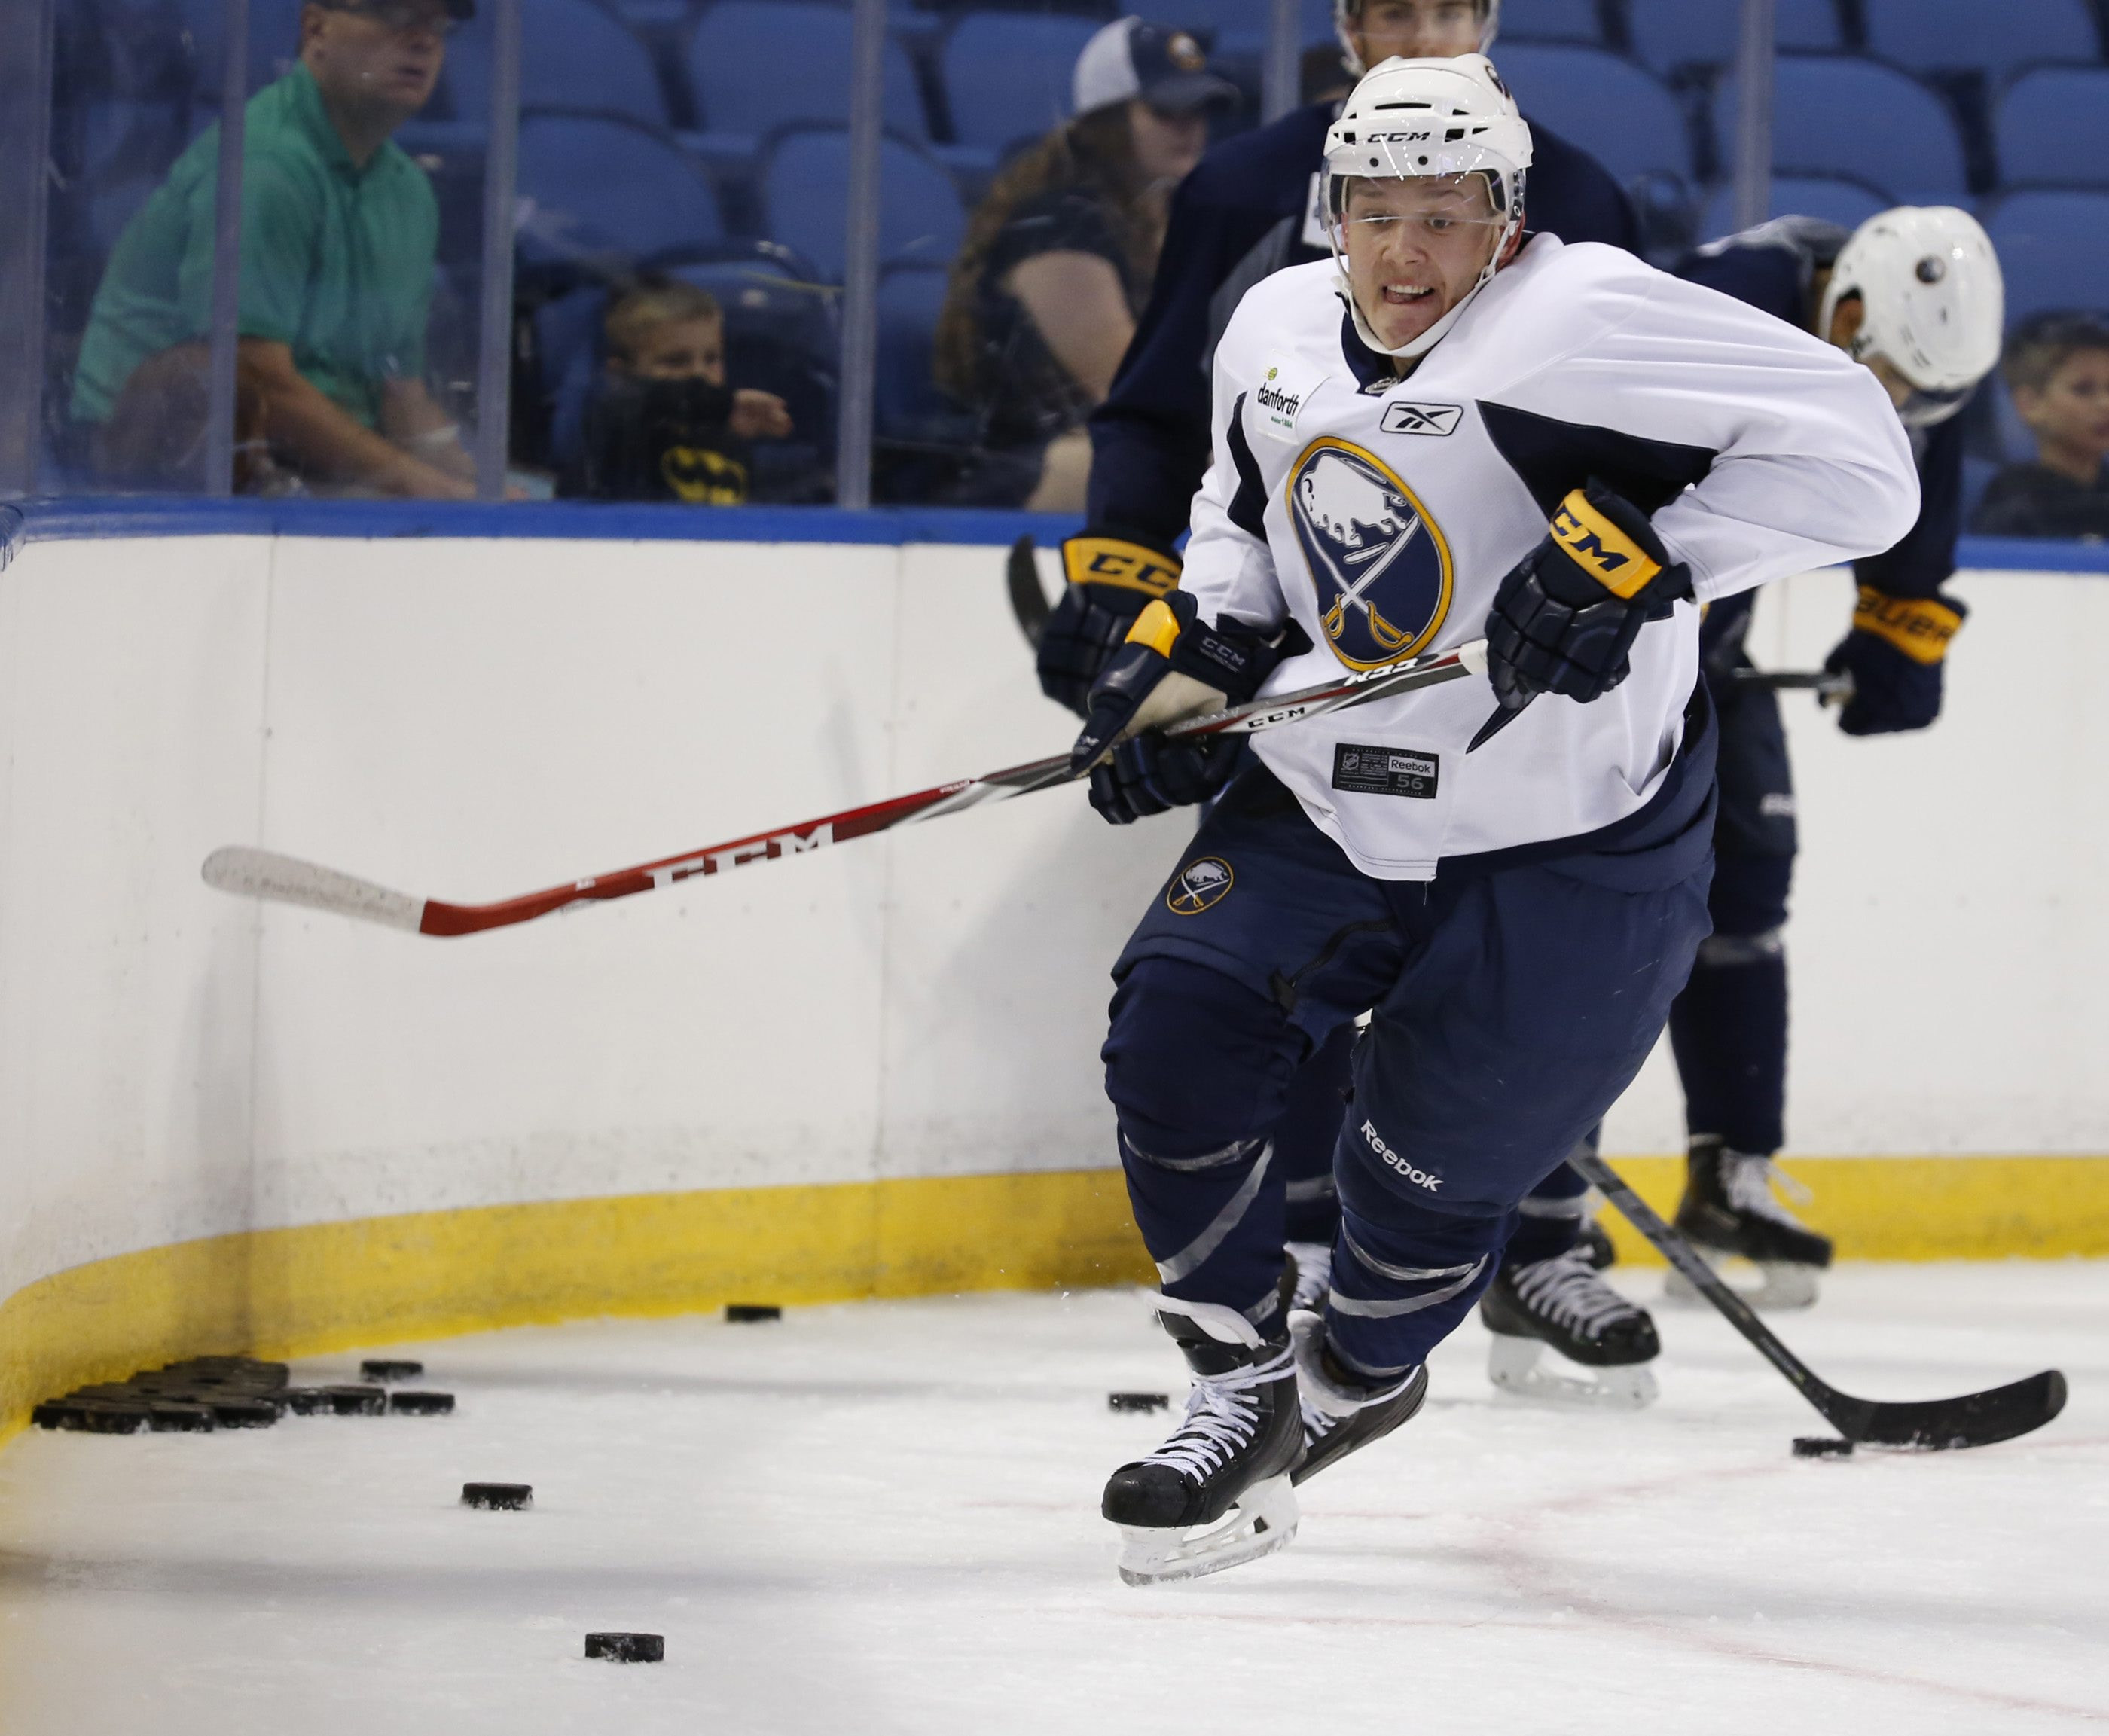 Vaclav Karabacek participates in the Buffalo Sabres' 2015  development camp. (Harry Scull Jr/Buffalo News)